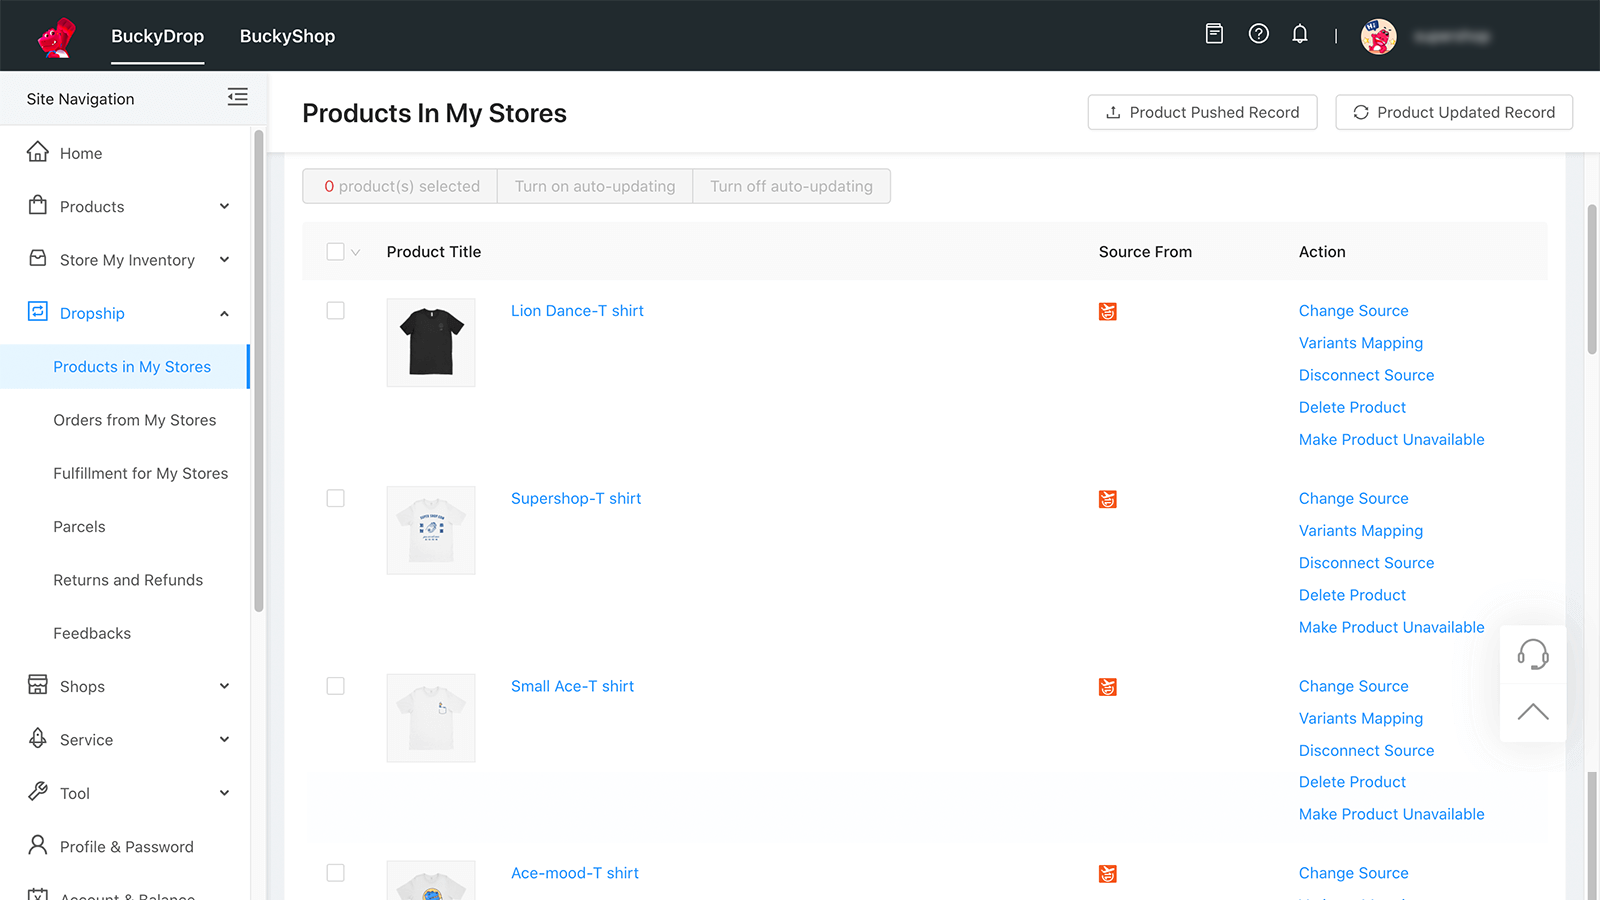 buckydrop-dropshipping-store-products